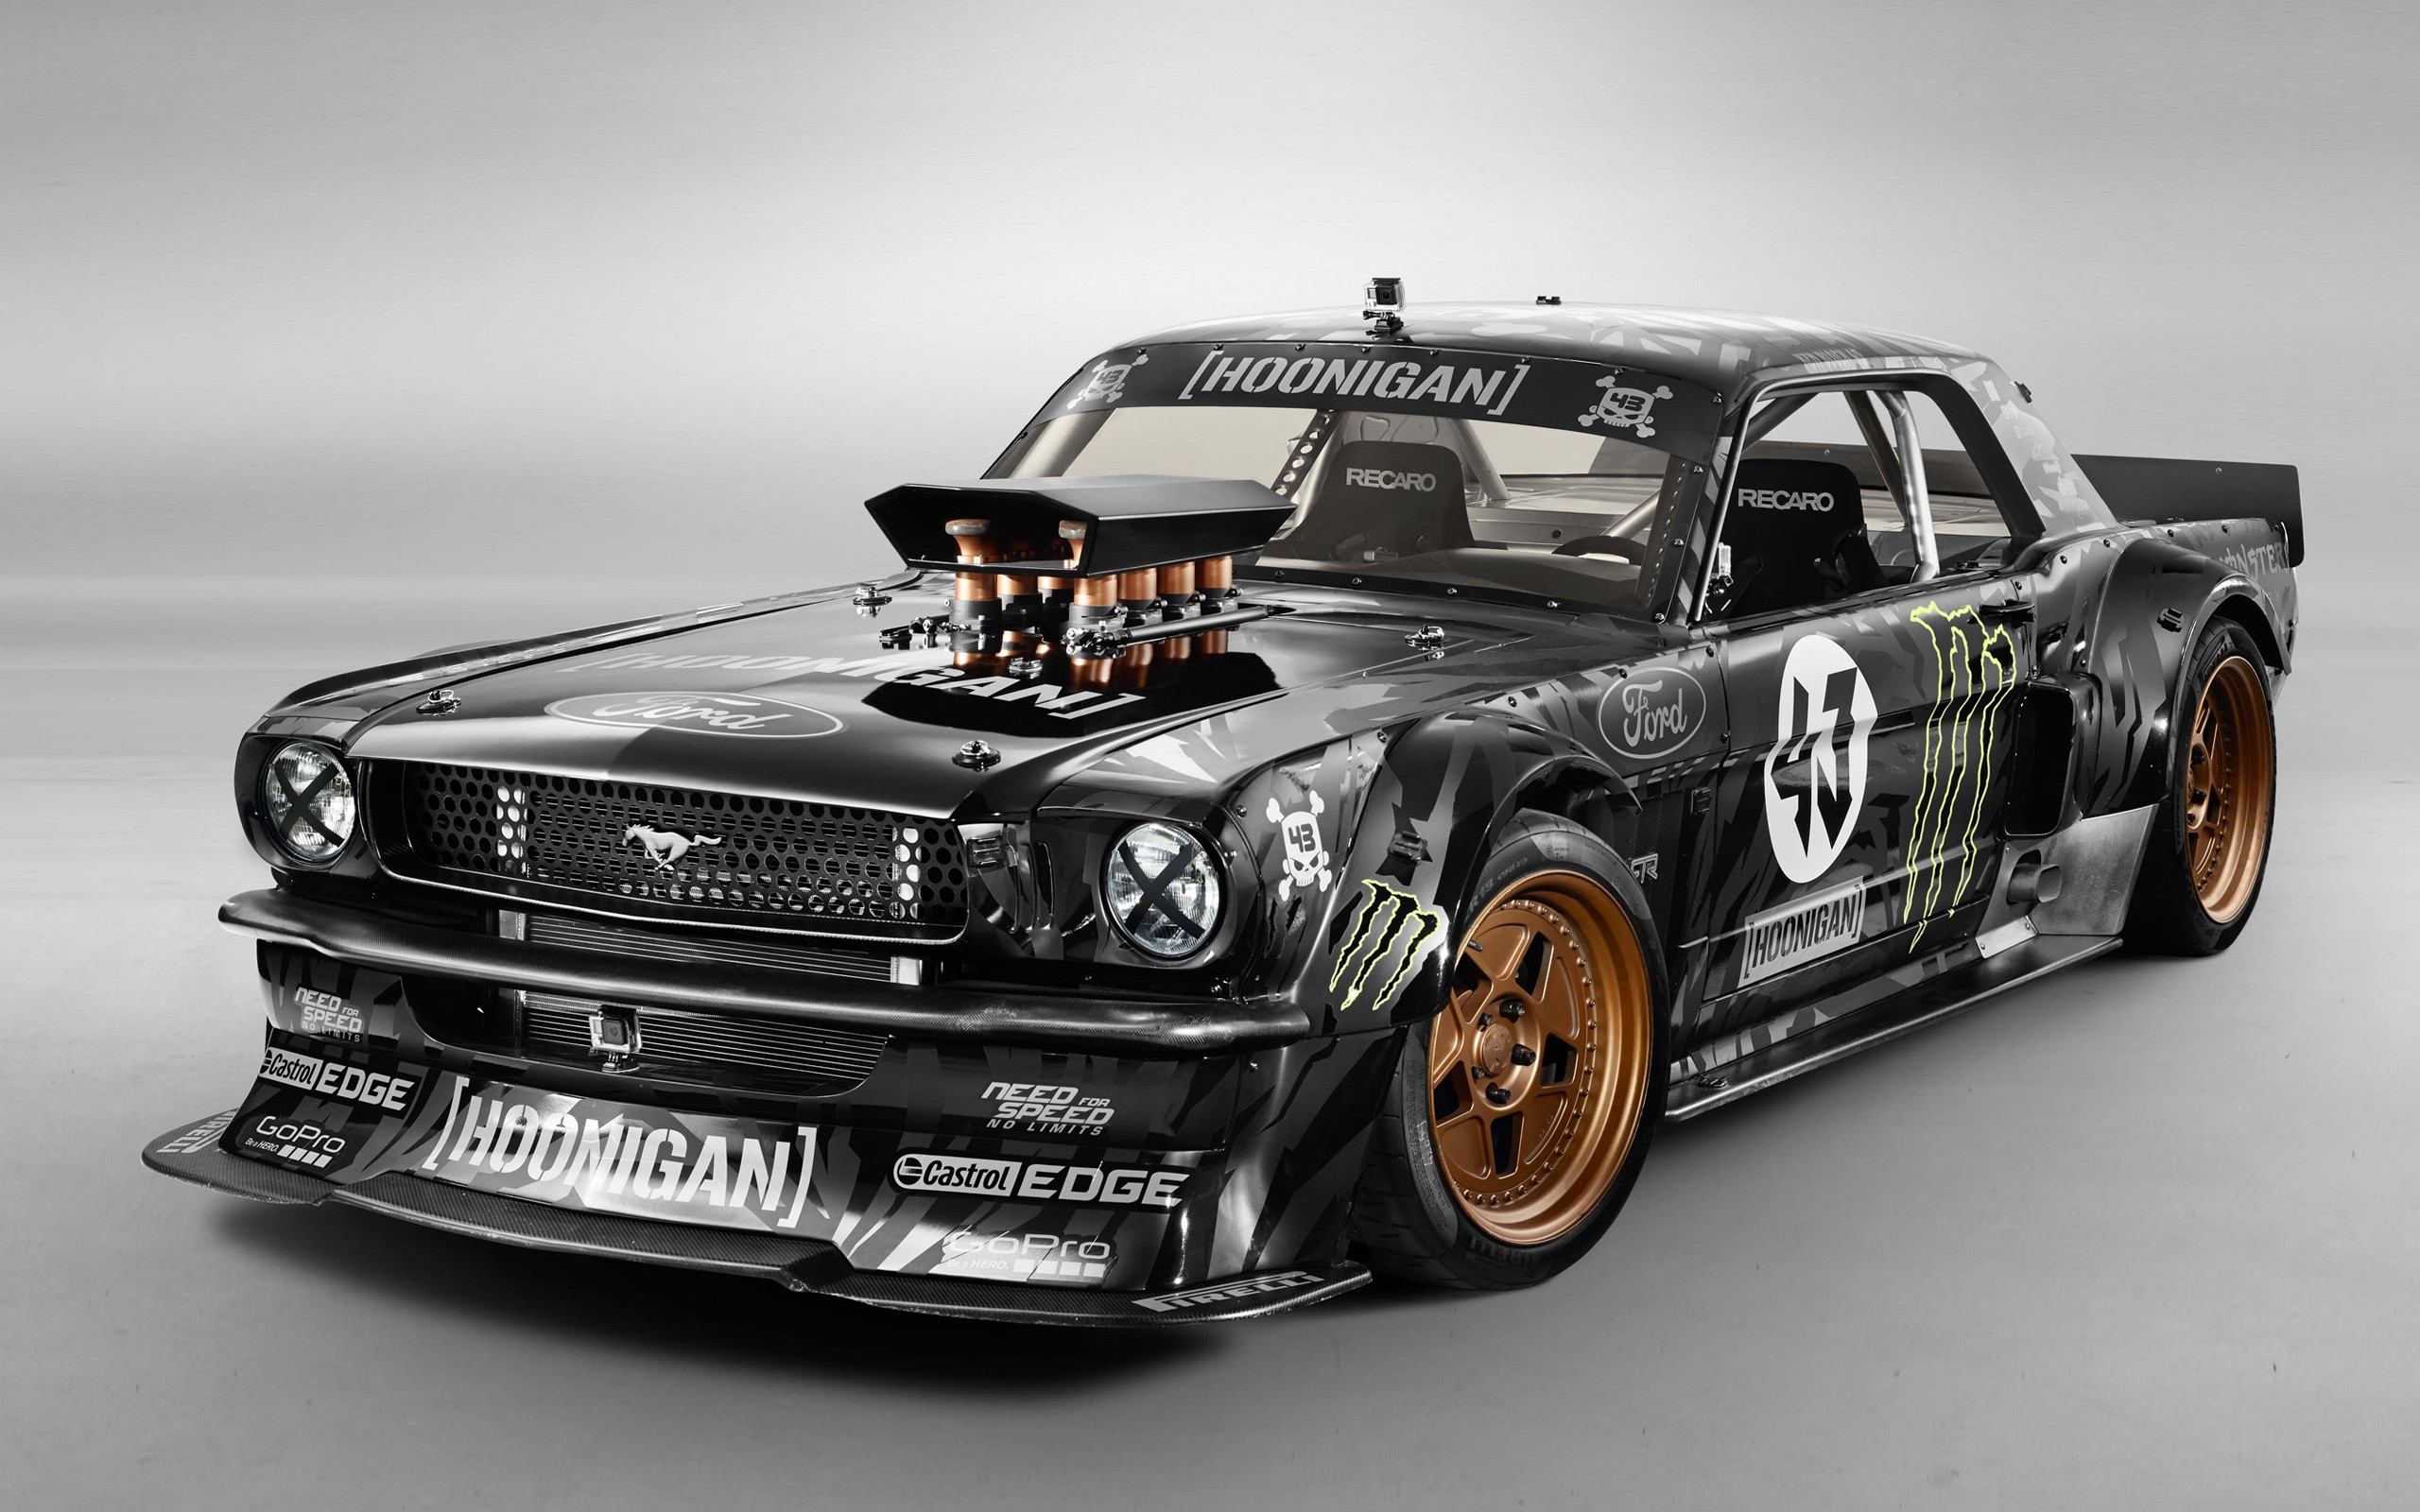 1965 ken block ford mustang hoonicorn rtr wallpaper hd car wallpapers id 4928. Black Bedroom Furniture Sets. Home Design Ideas